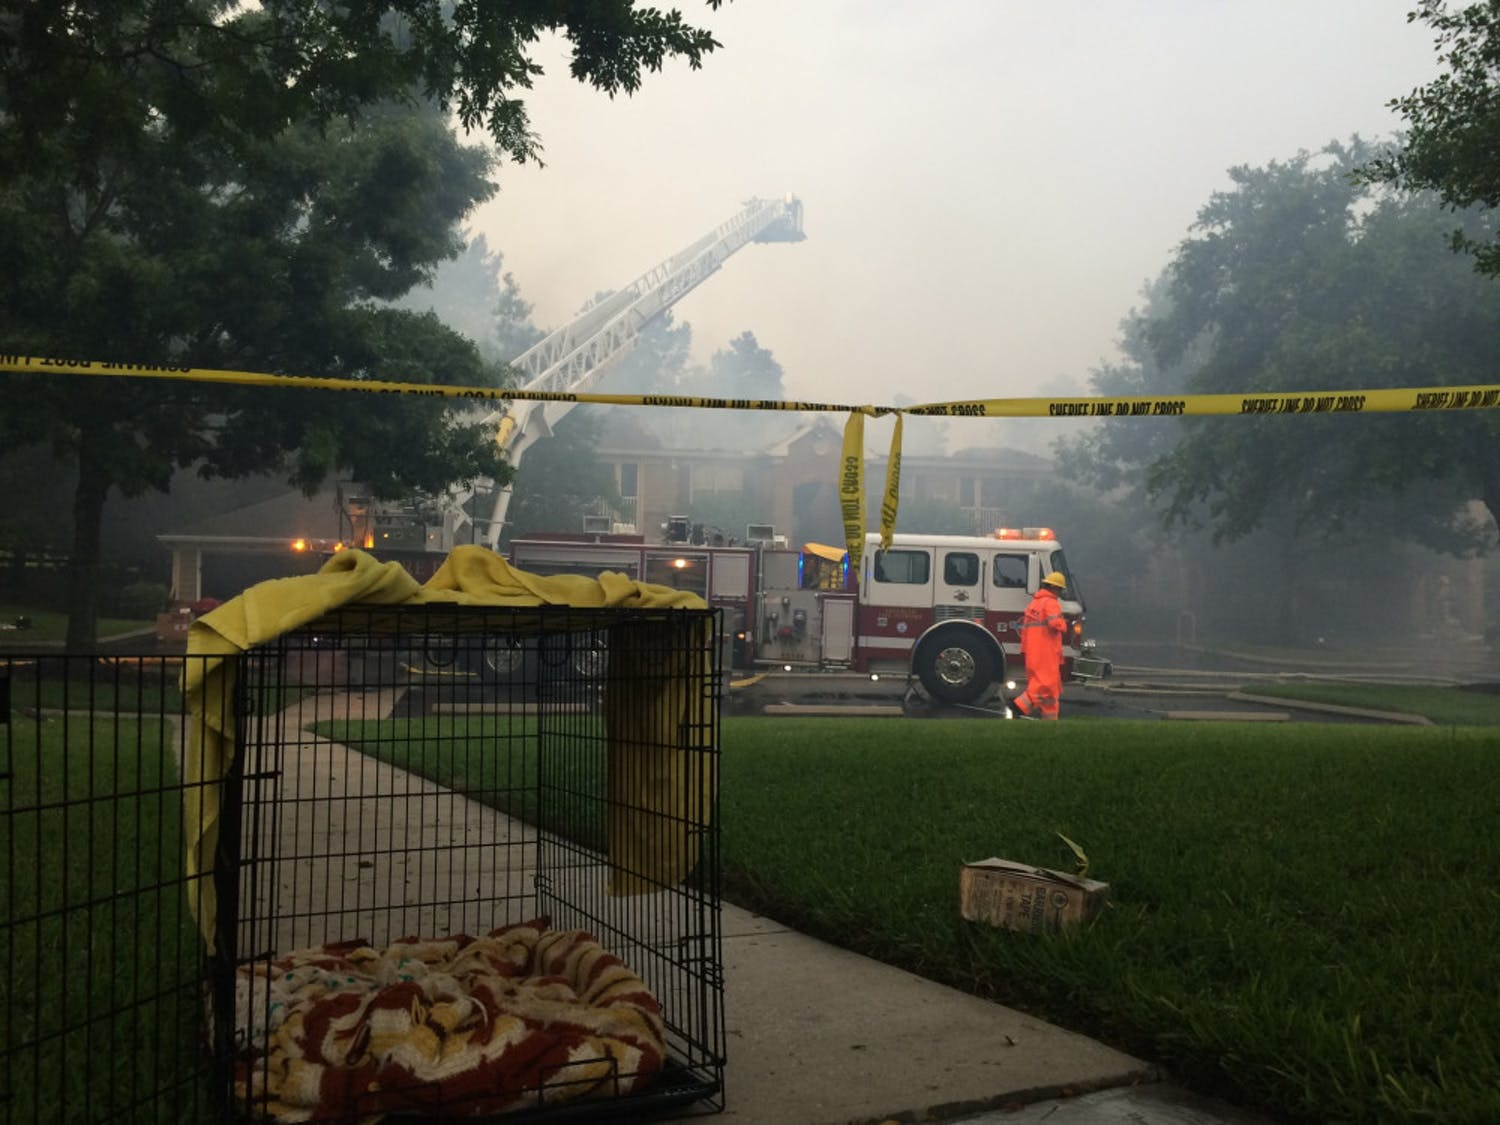 All 16 residents and their pets were reportedly unharmed in the fire.